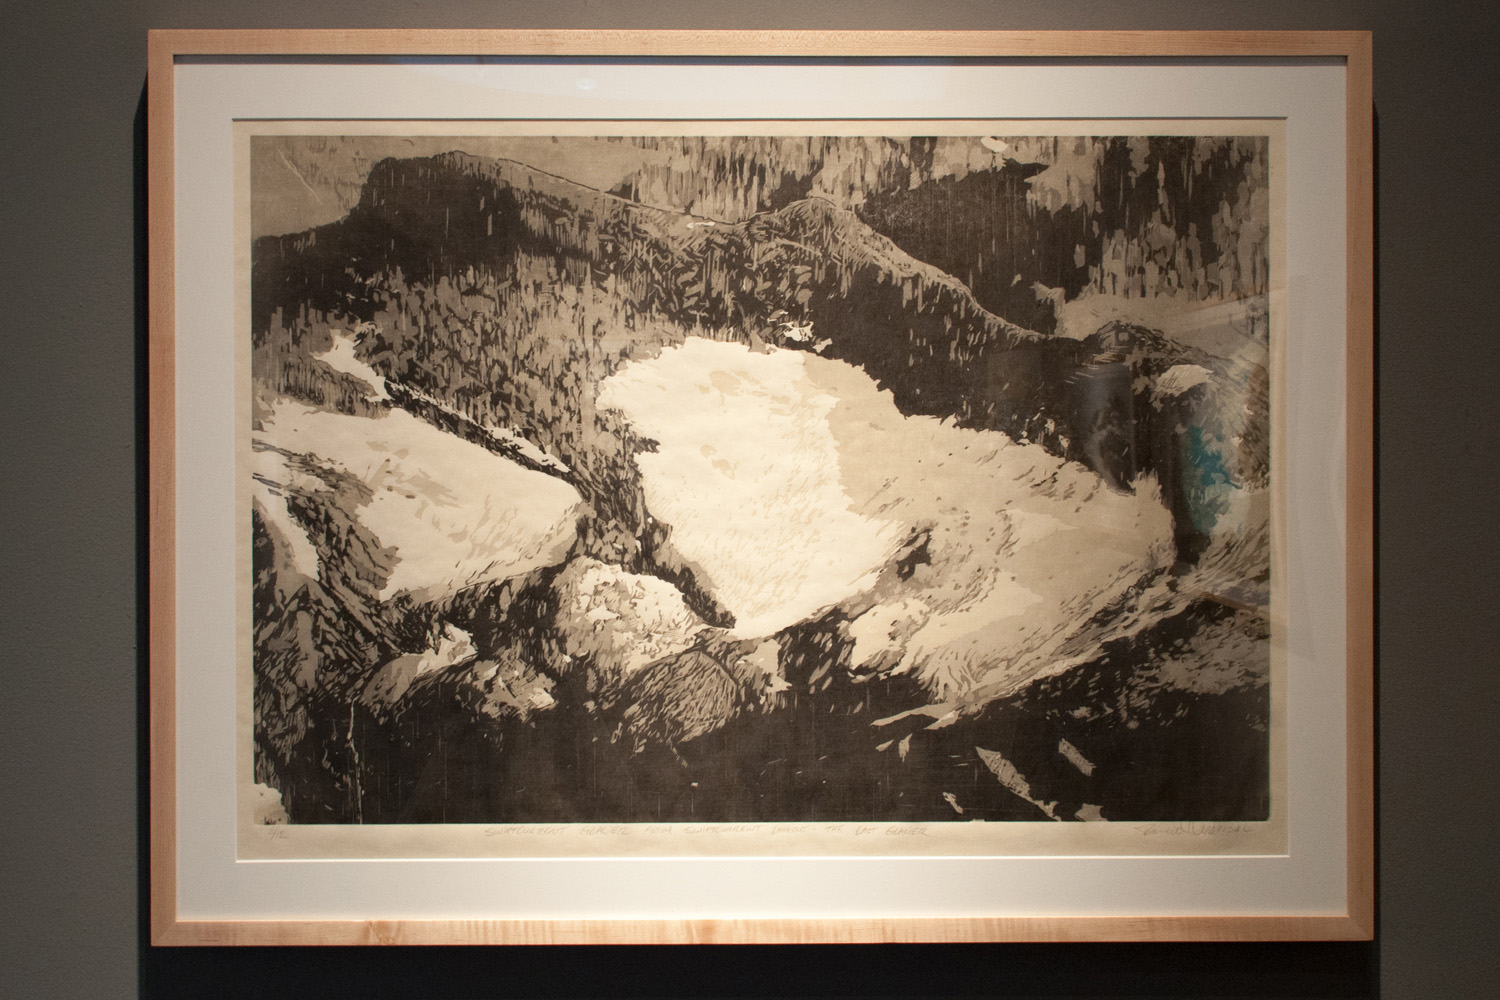 Swiftcurrent Glacier – The Last Glacier reductive jigsaw woodcut print, five runs and five colors 26 x 36 inches TAN 006G